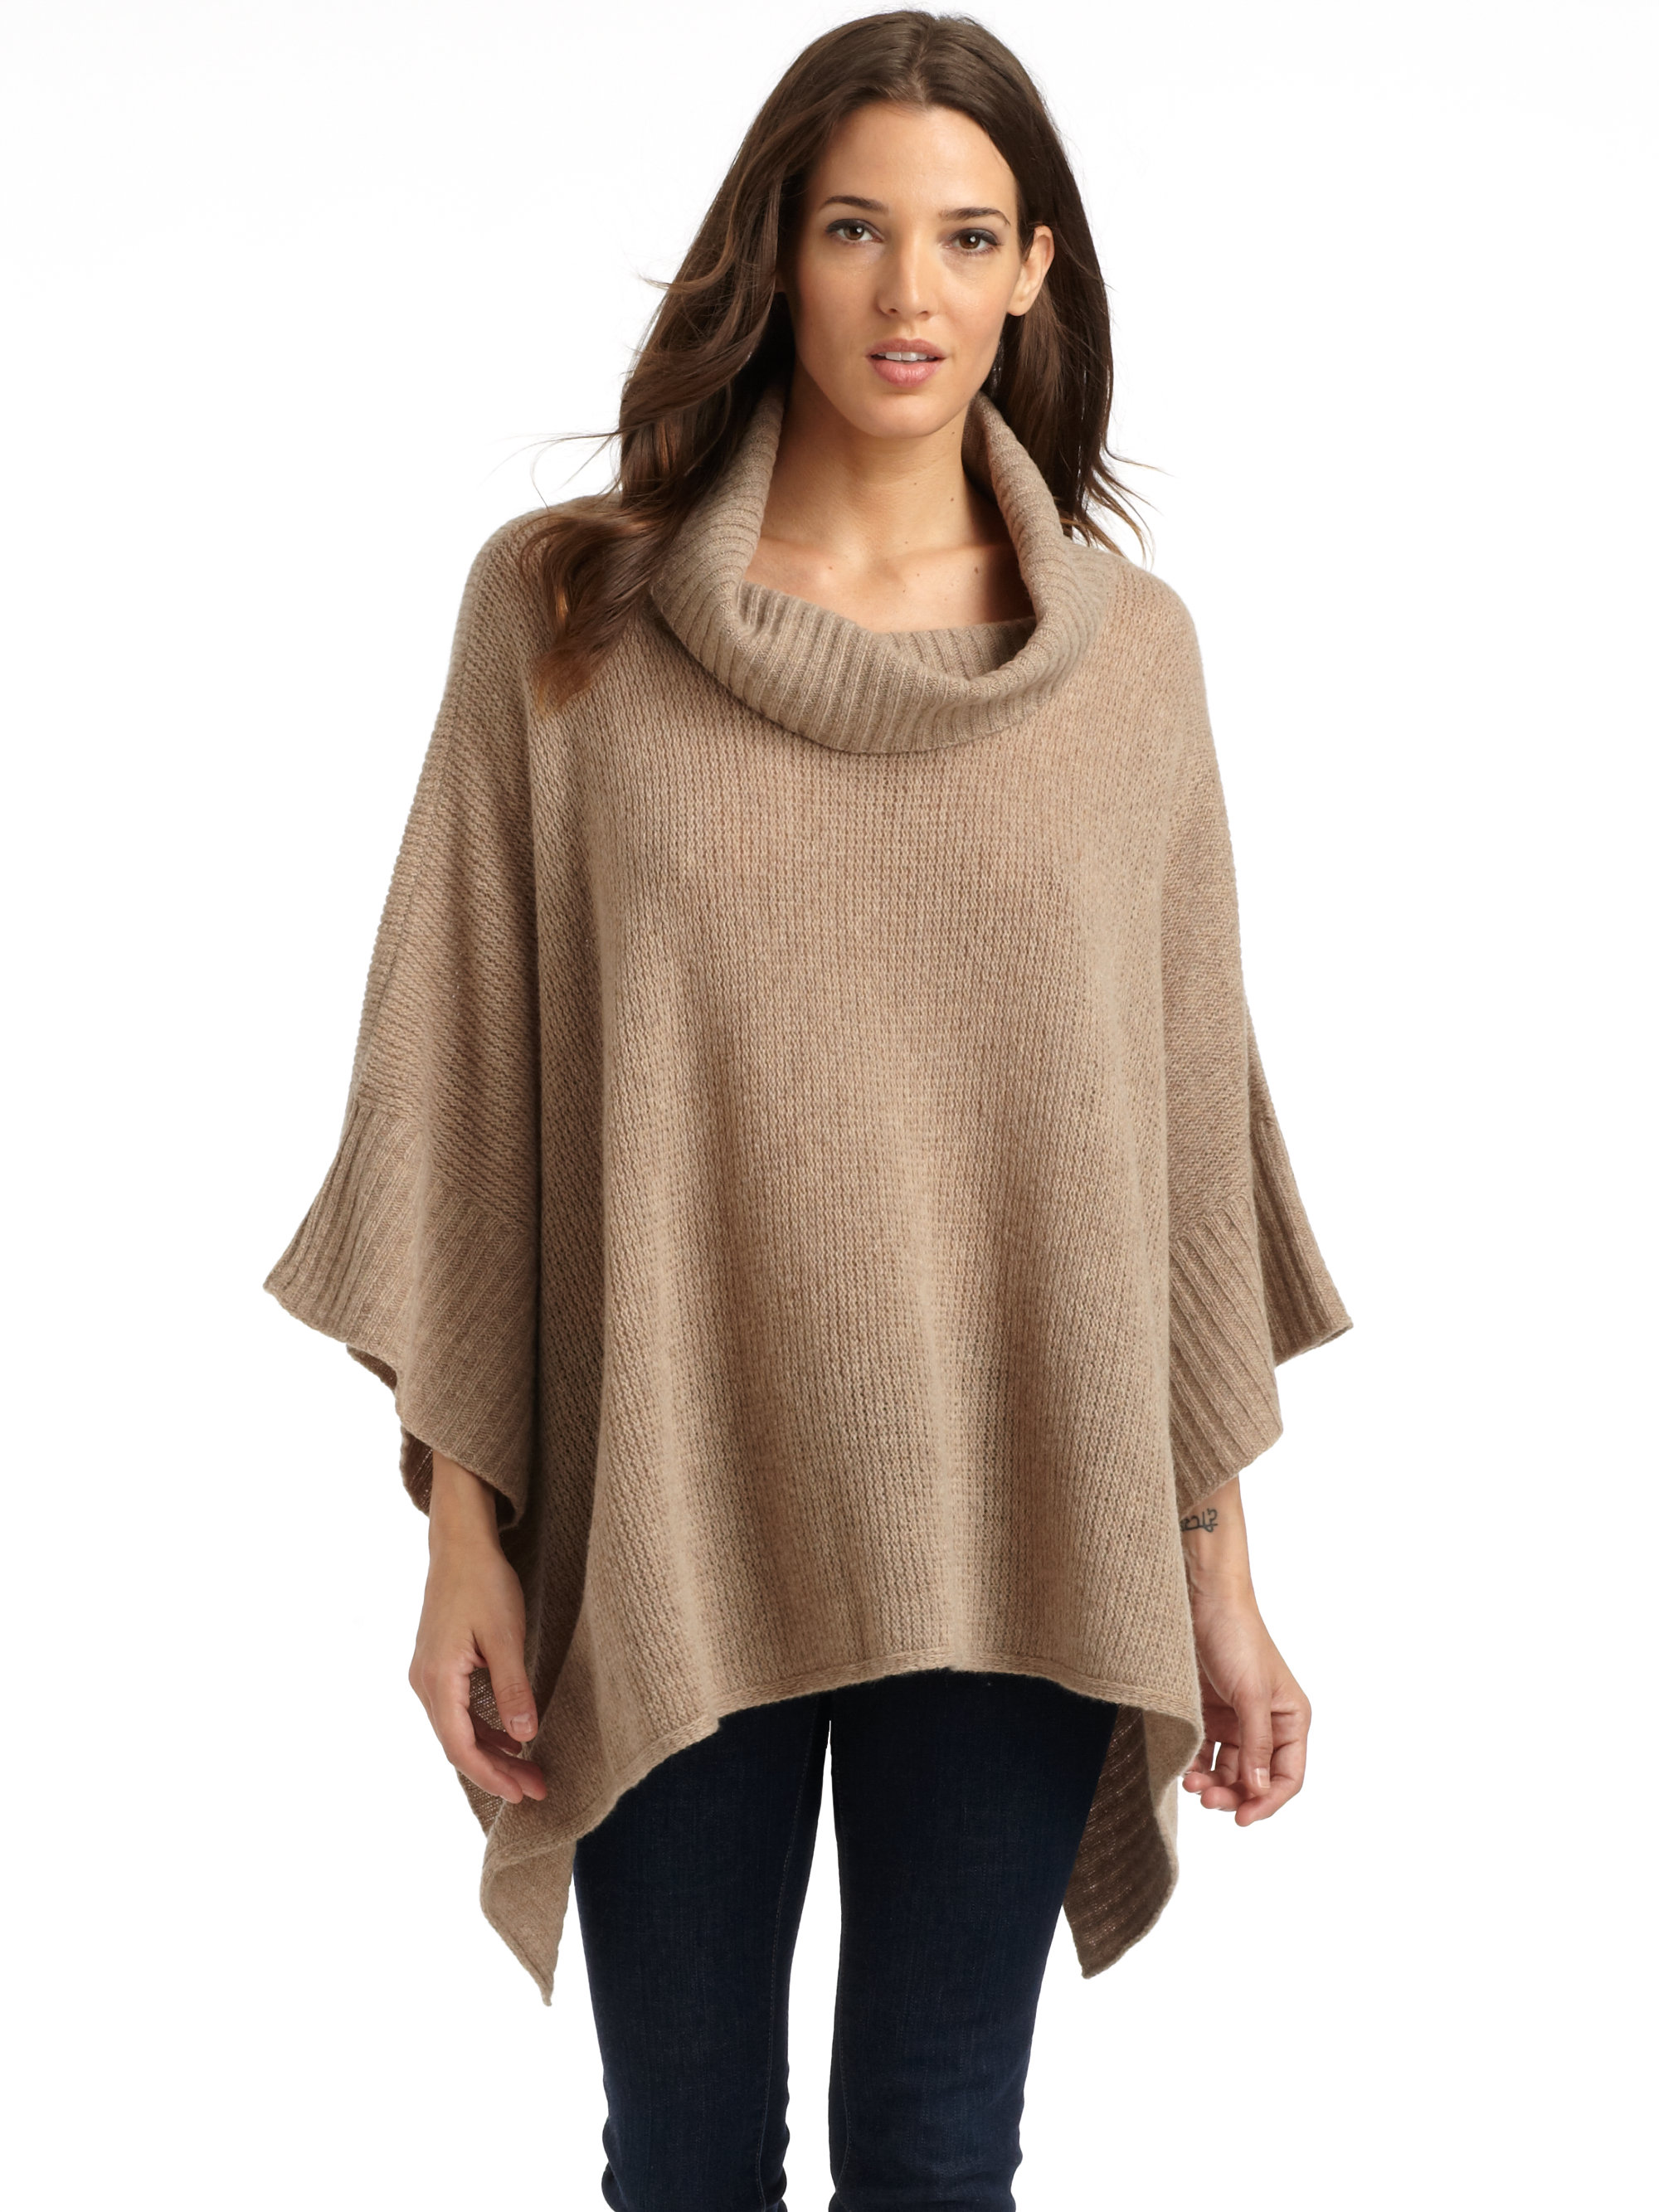 How to wear a poncho sweater?